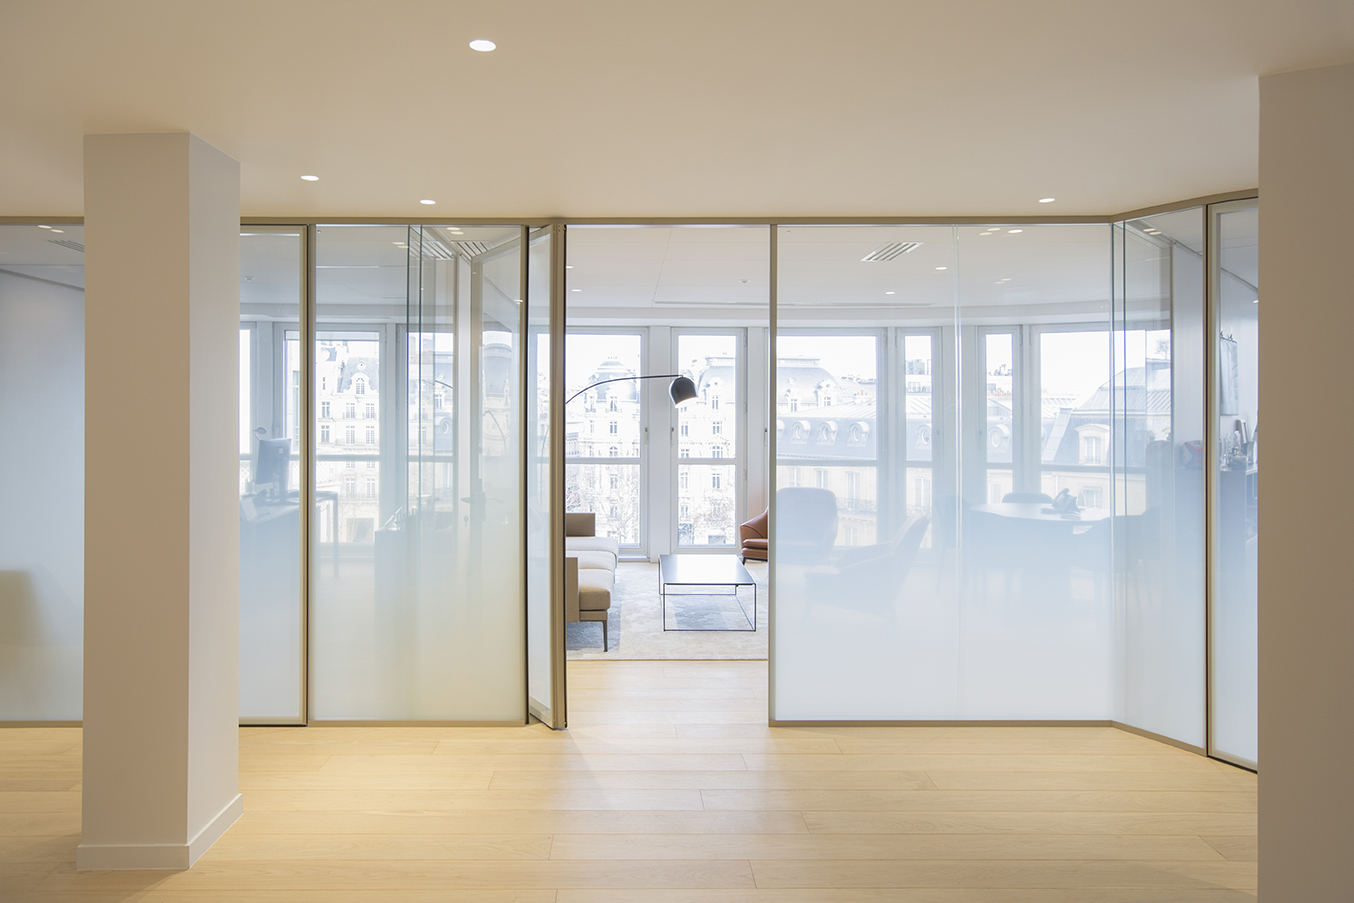 Laminated Glass A Decorative And Safety Glass My Laminated Glass